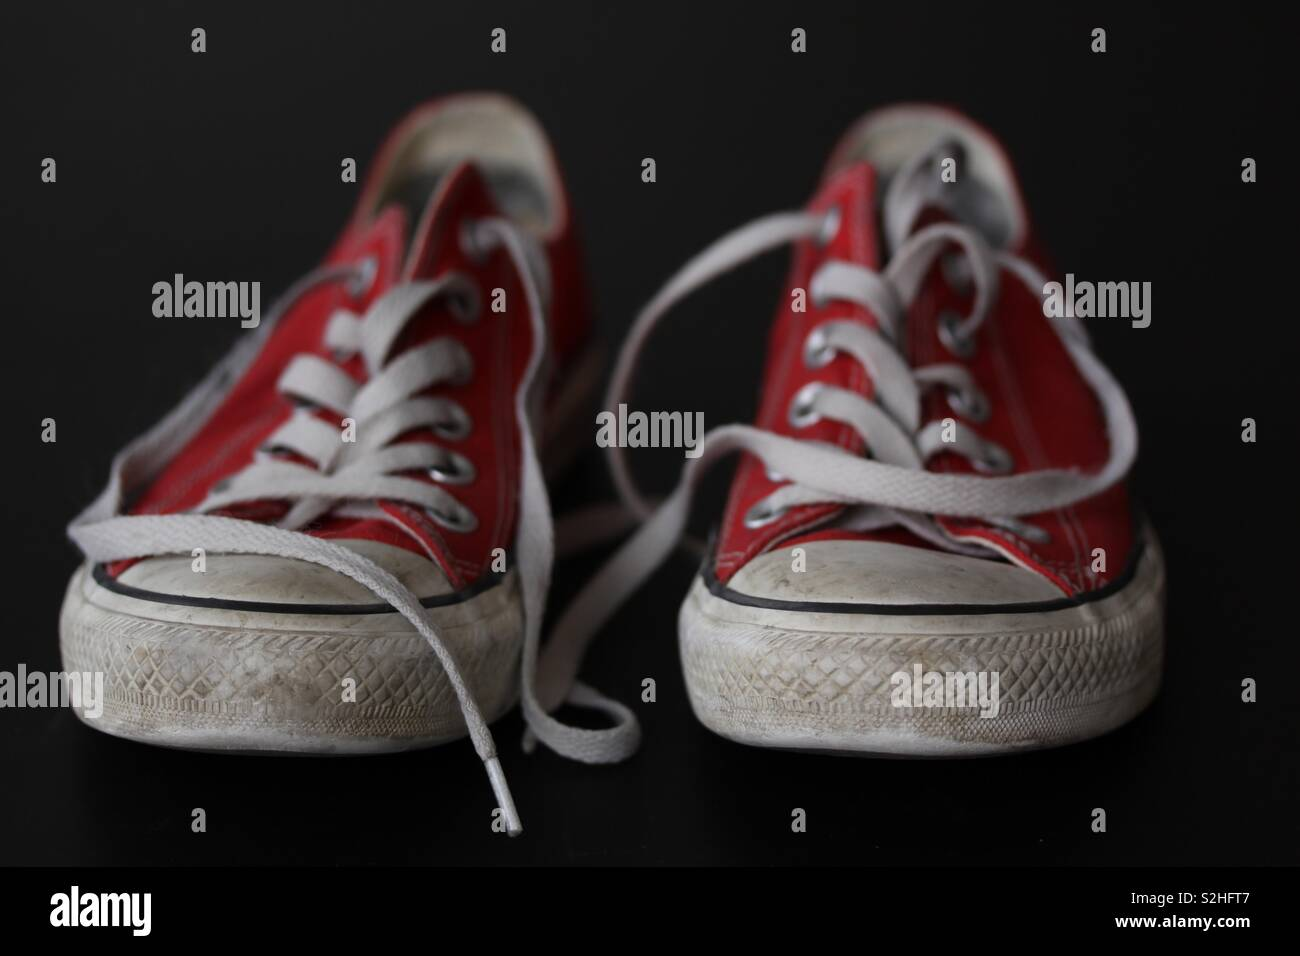 Pair of sneakers - retro style old worn out shoes with black background - Stock Image